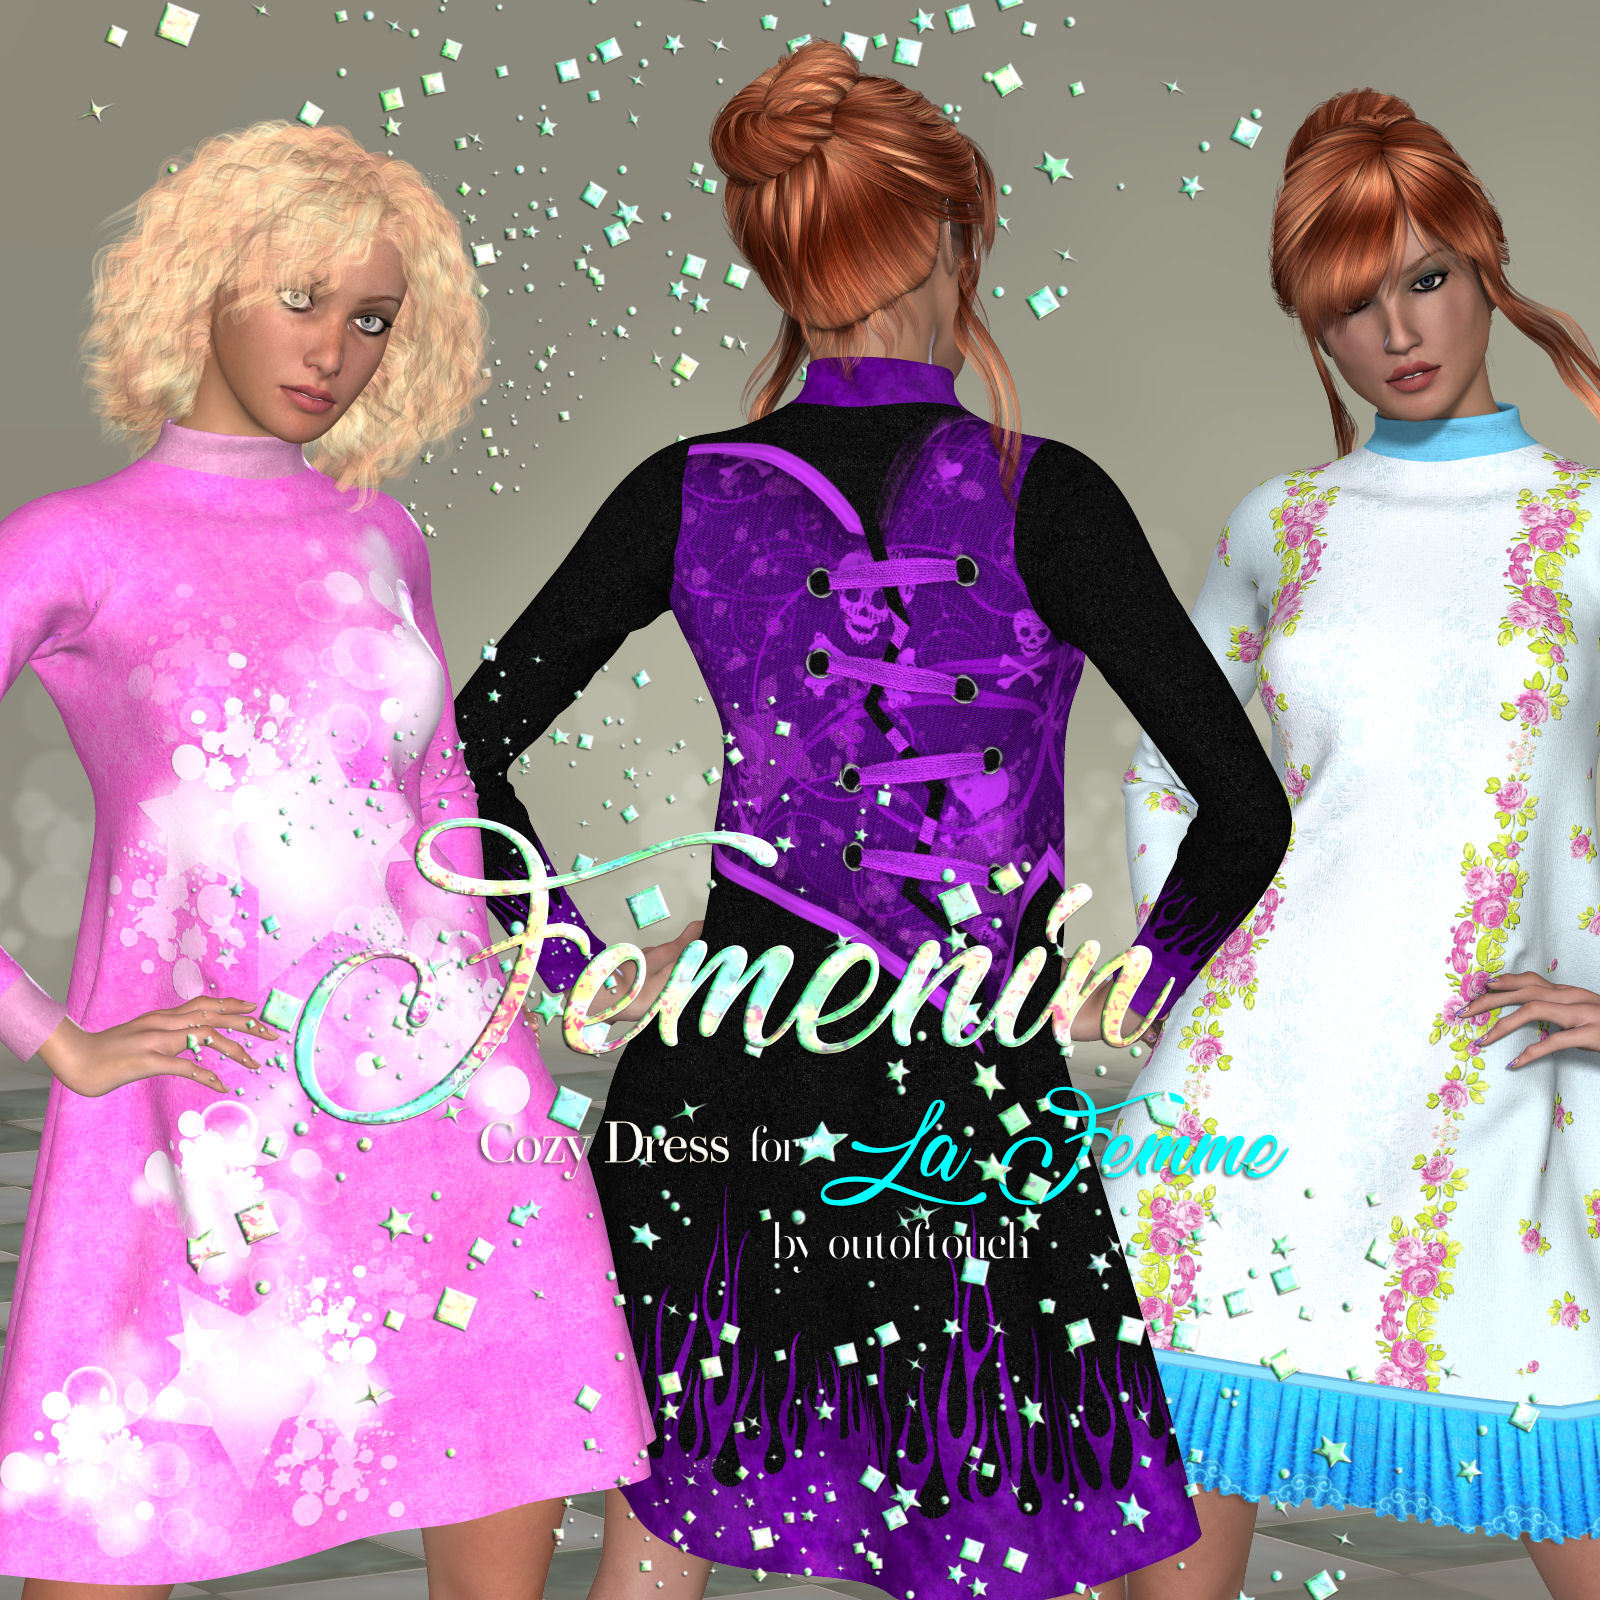 DA-Femenin for Cozy Dress for LaFemme by outoftouch